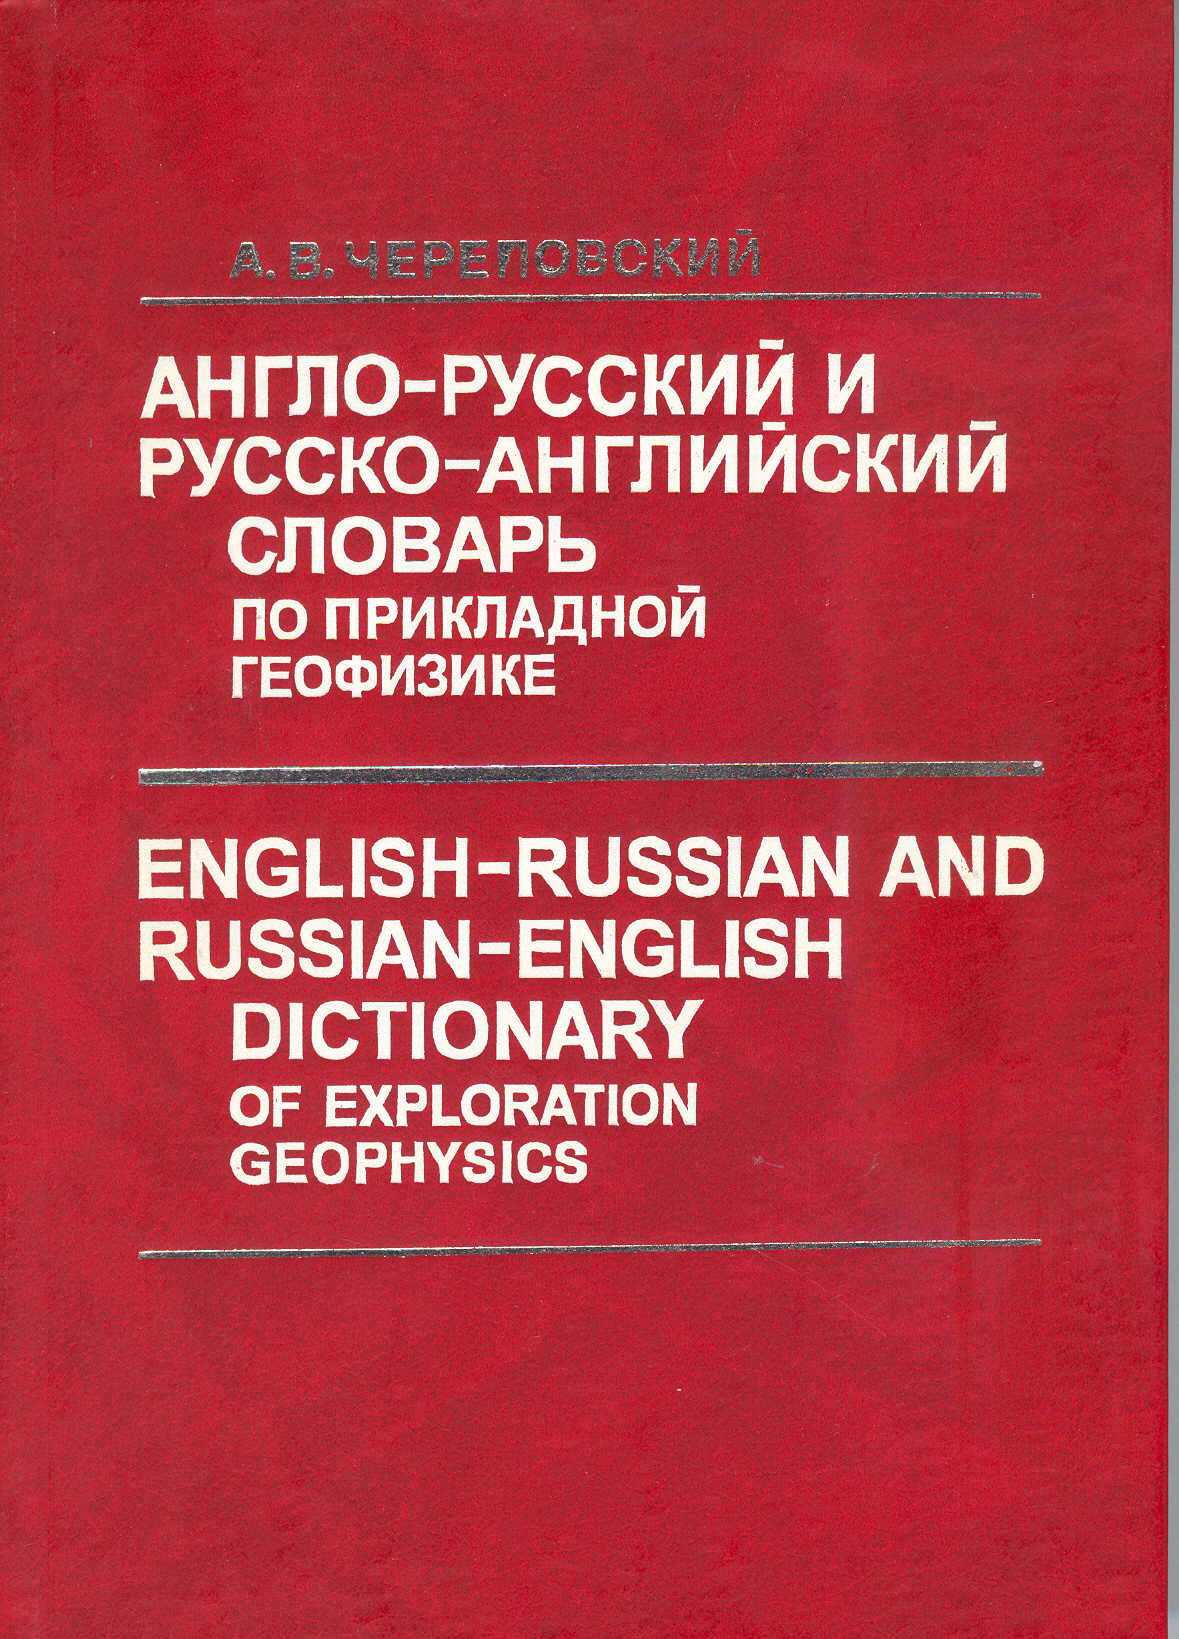 Dictionary The History Of Russian 4